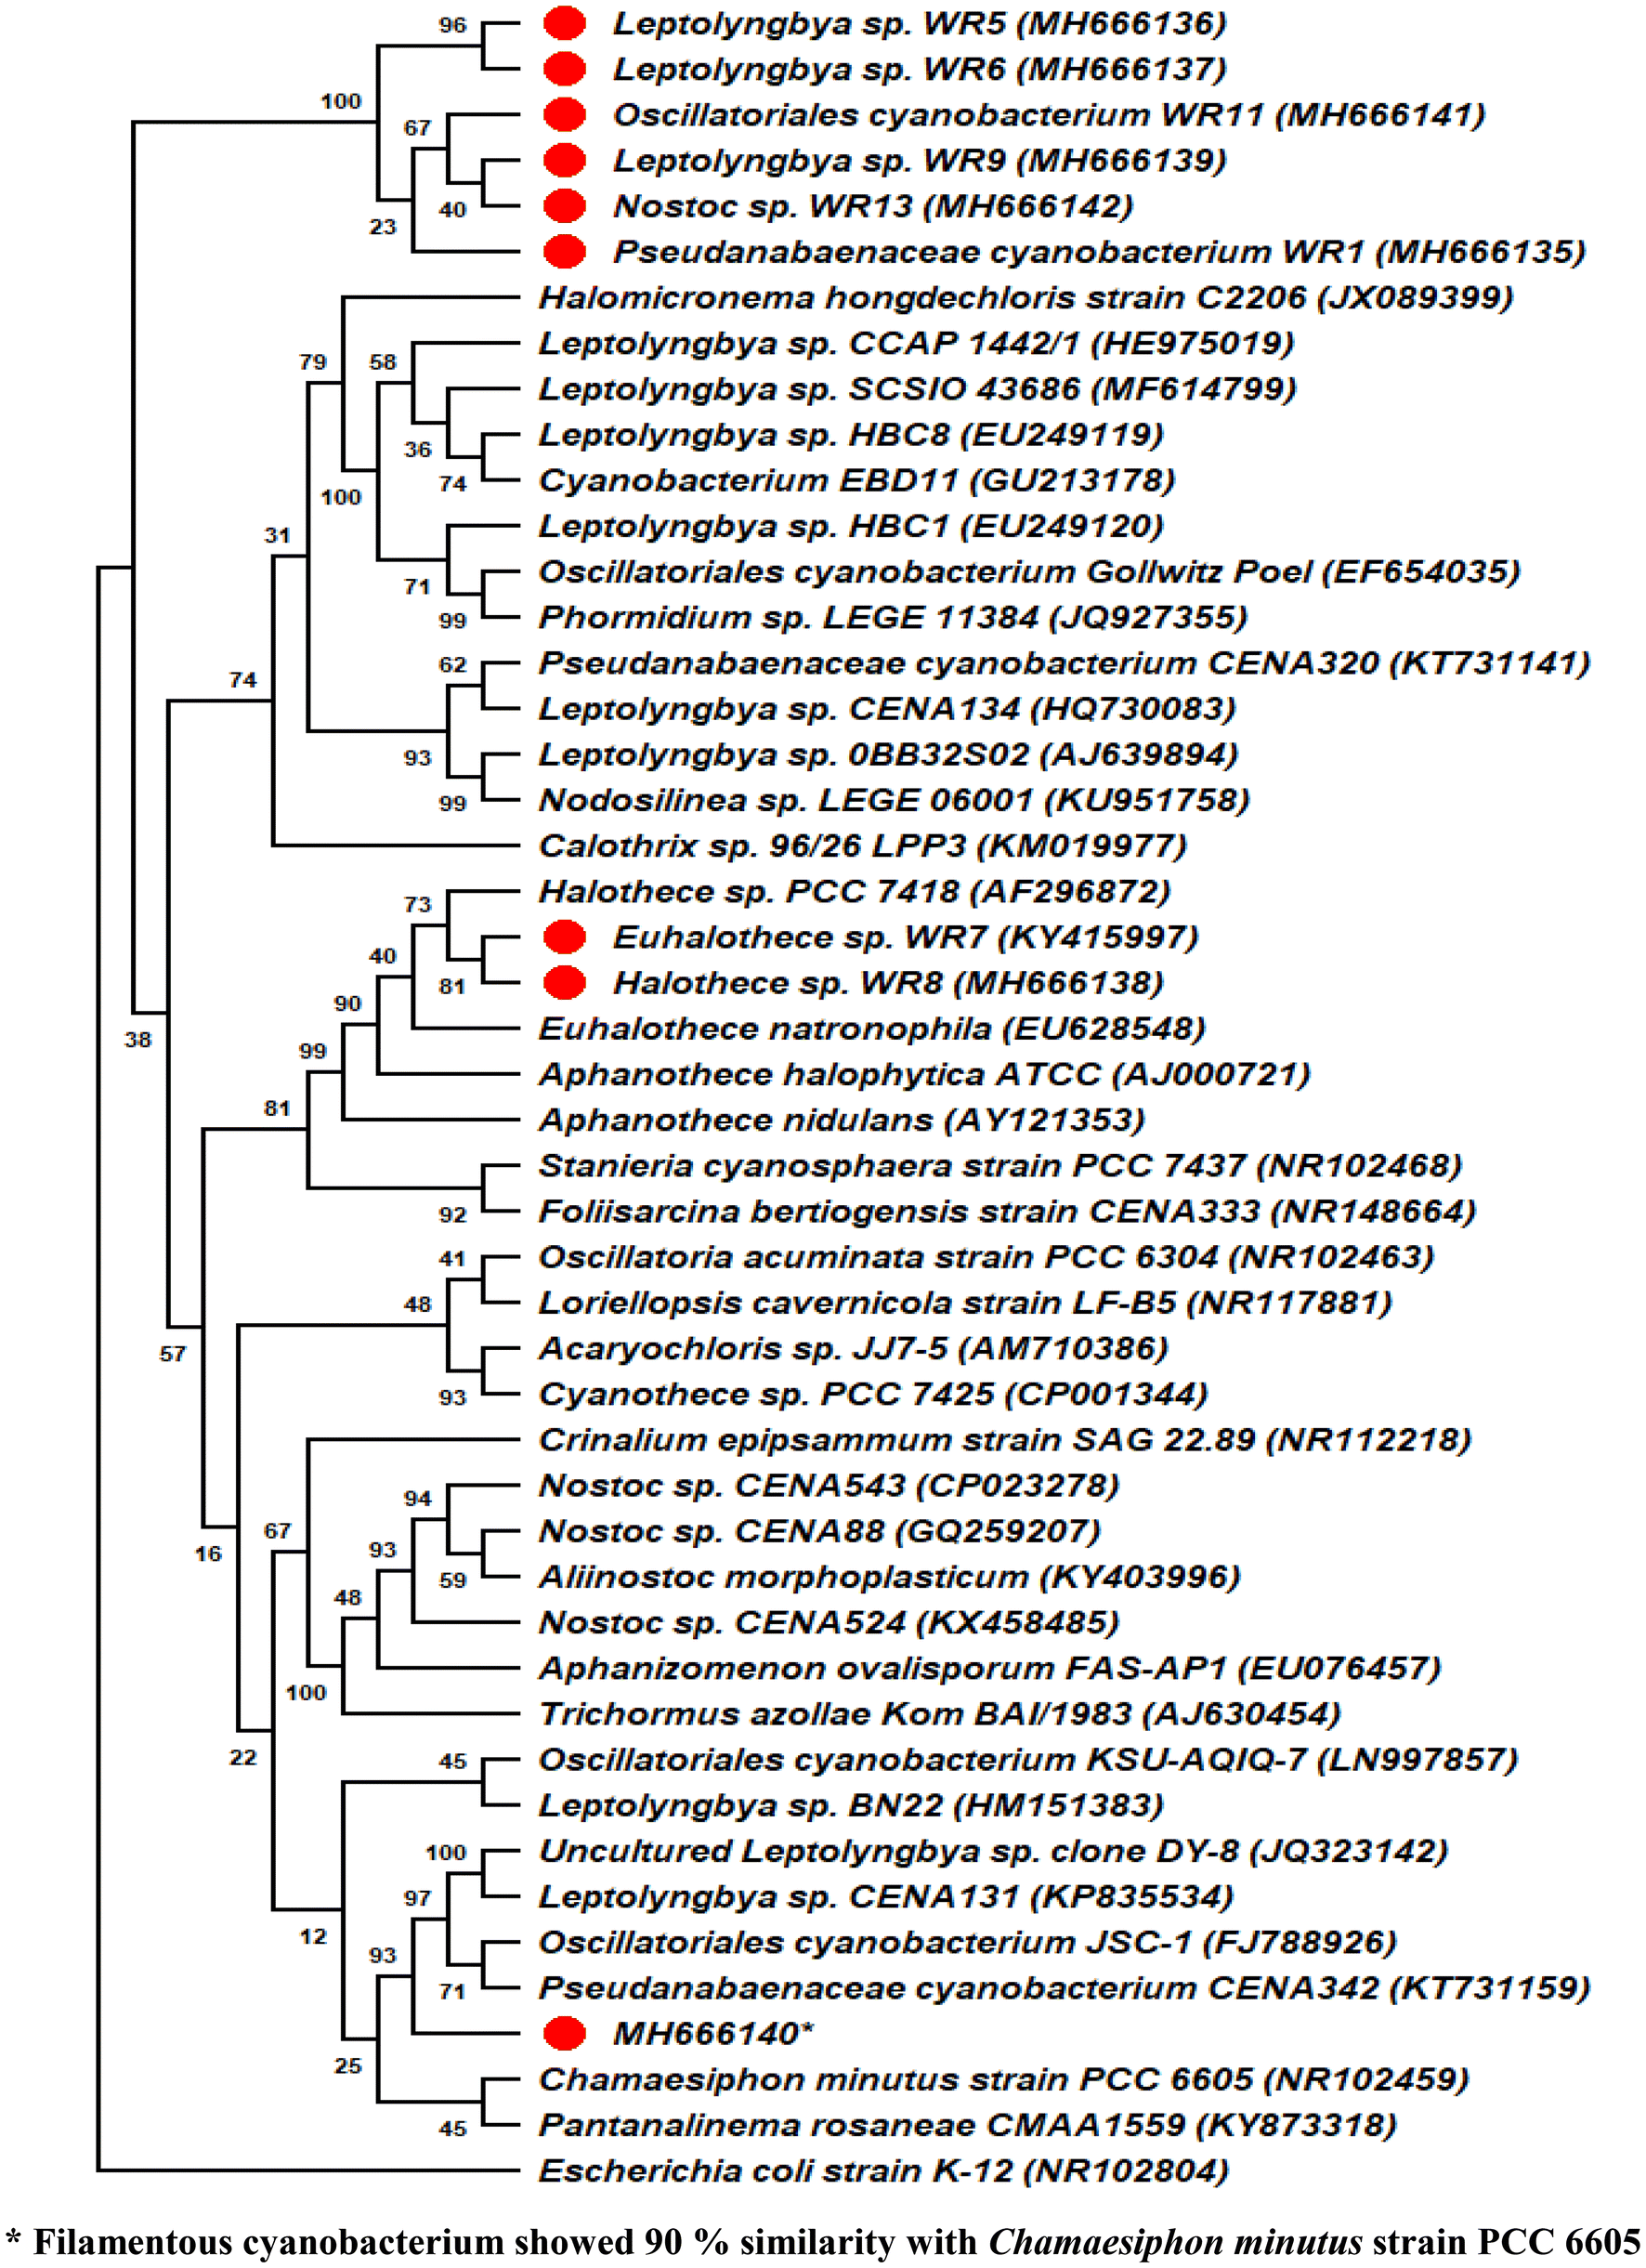 Cyanobacterial diversity in mat sample obtained from